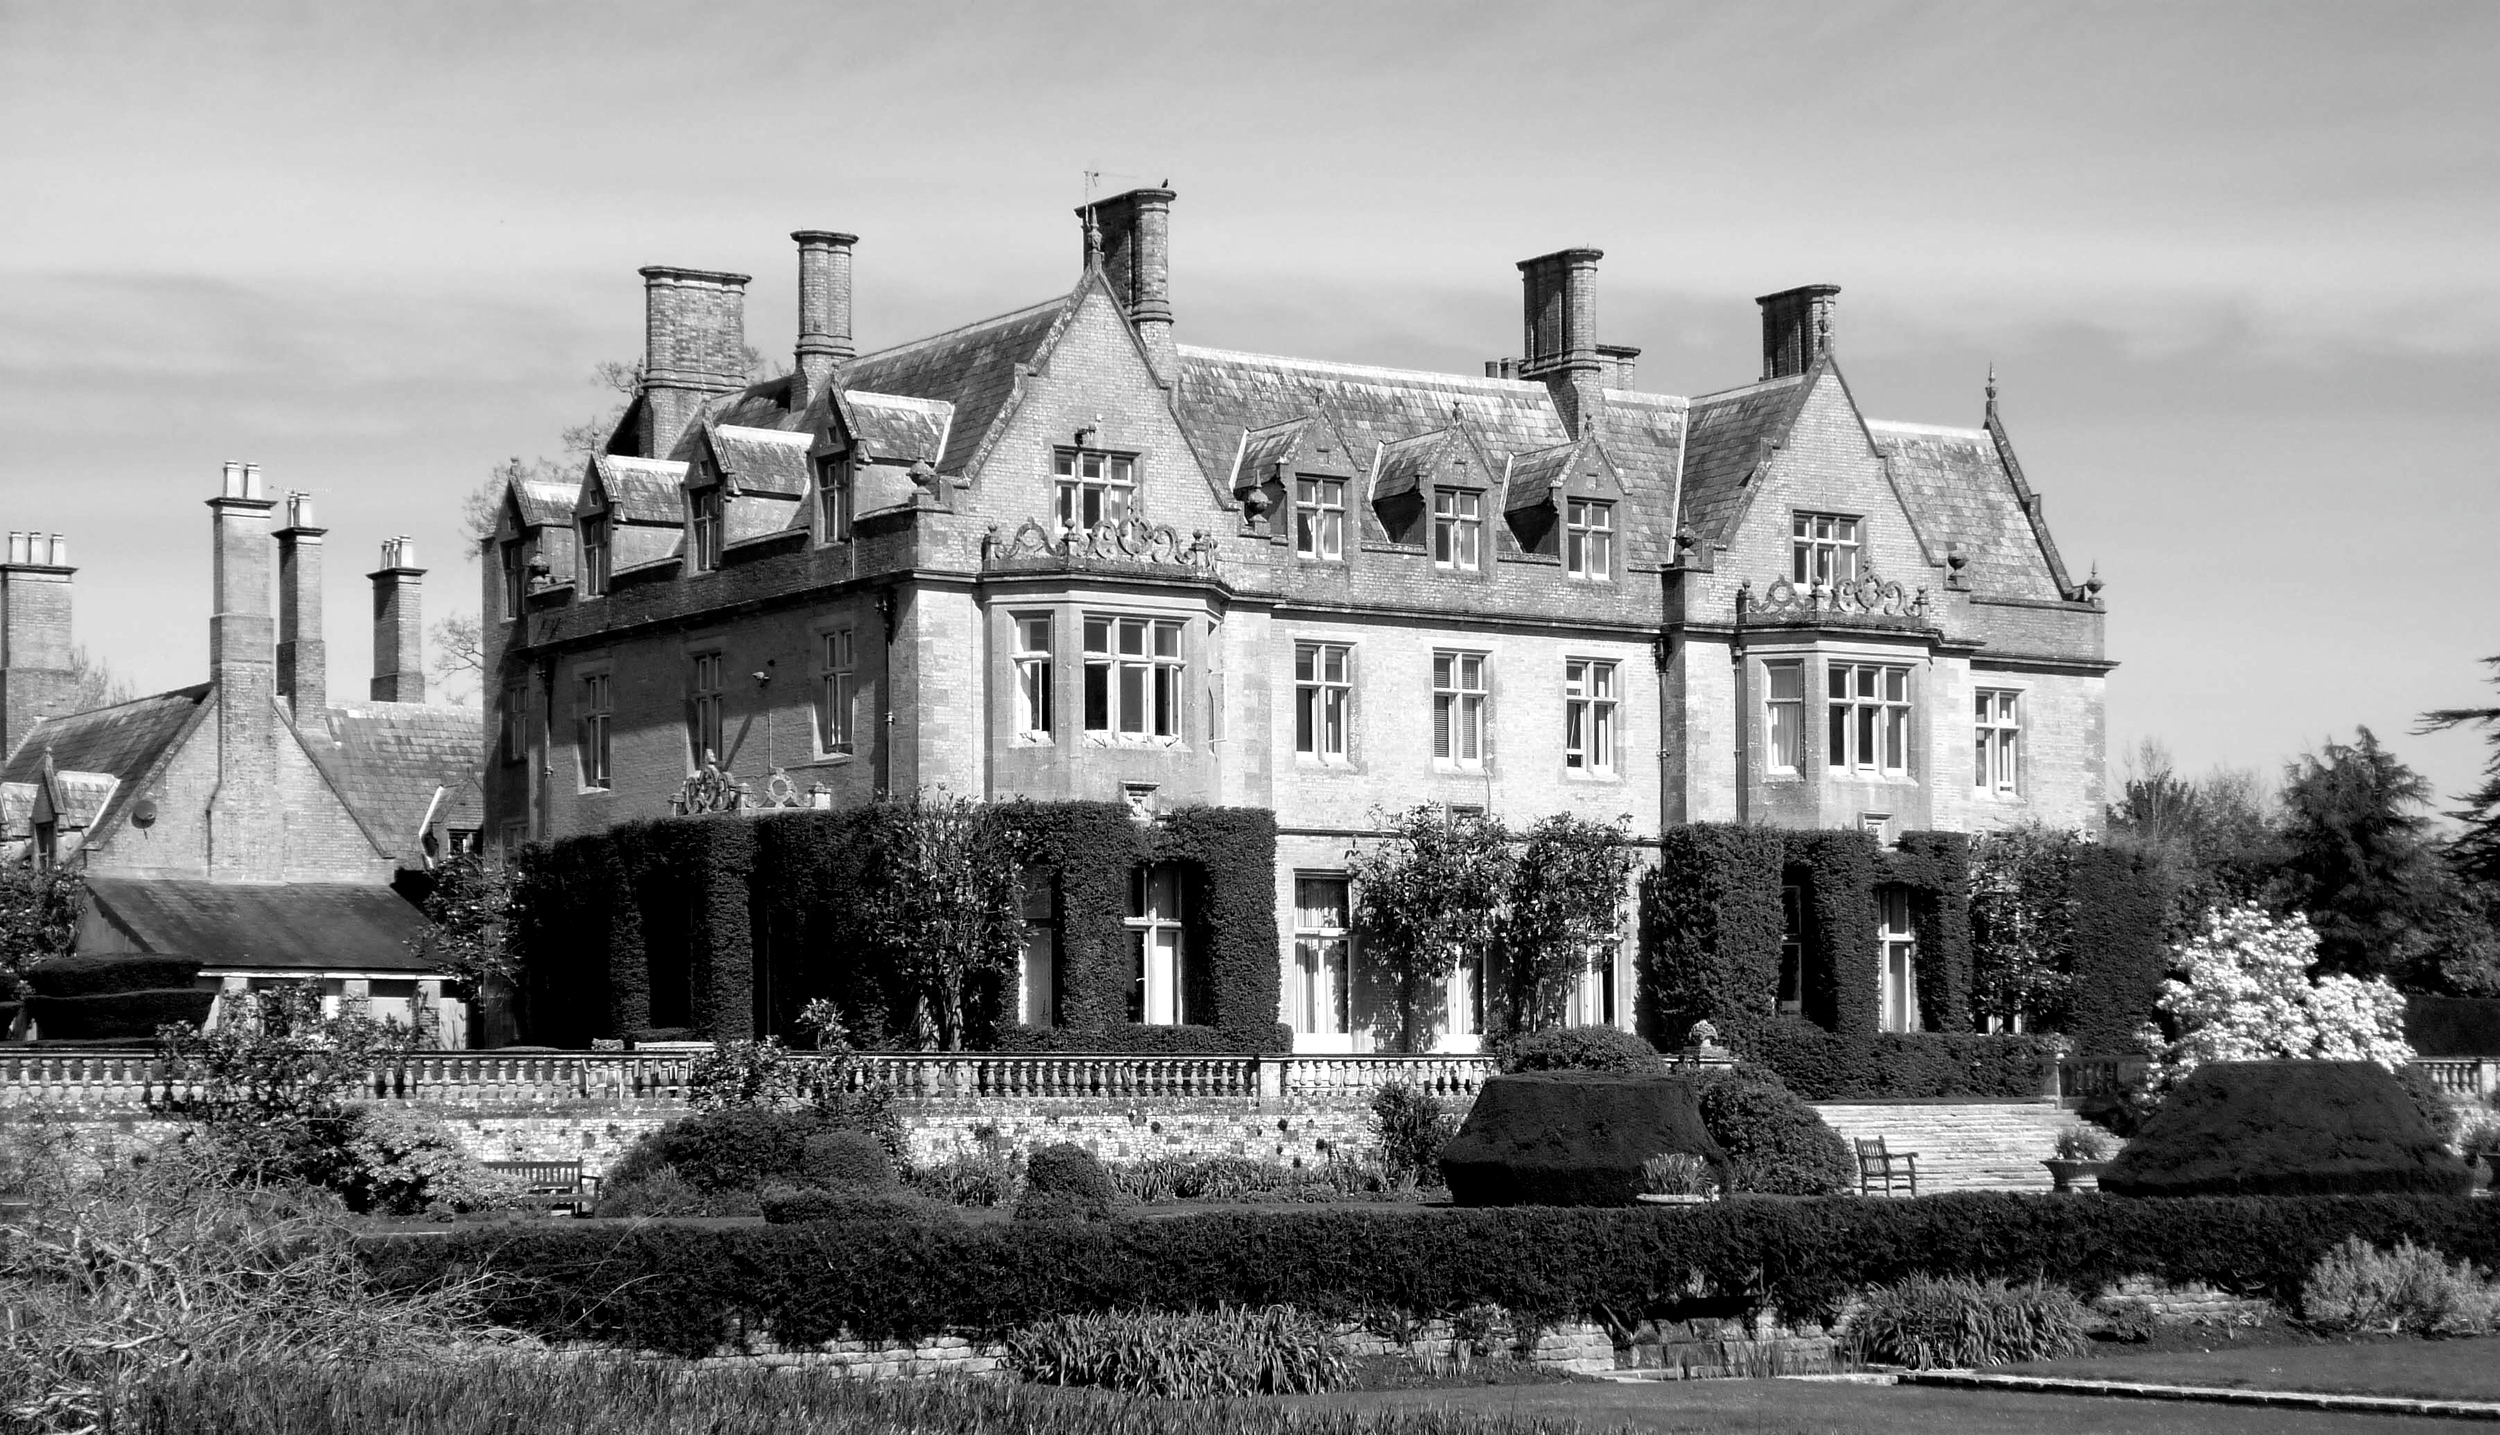 Amport House, Hampshire